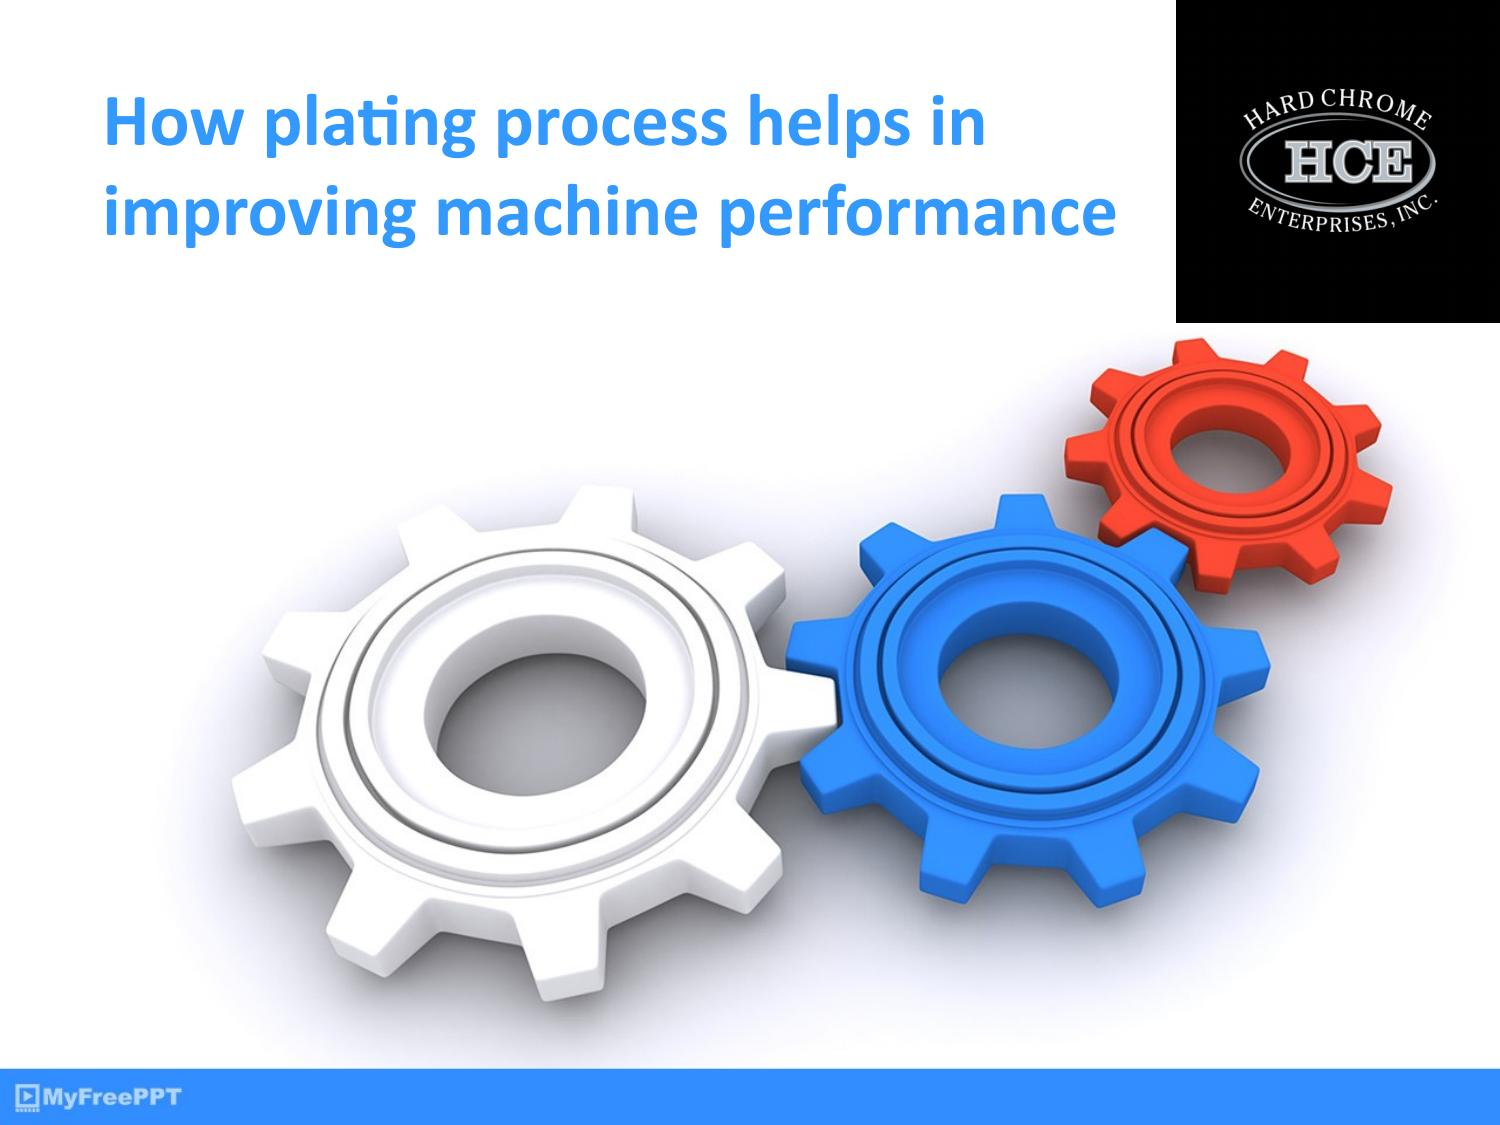 How Metal Plating Improves Your Machine Performance by Hard Chrome